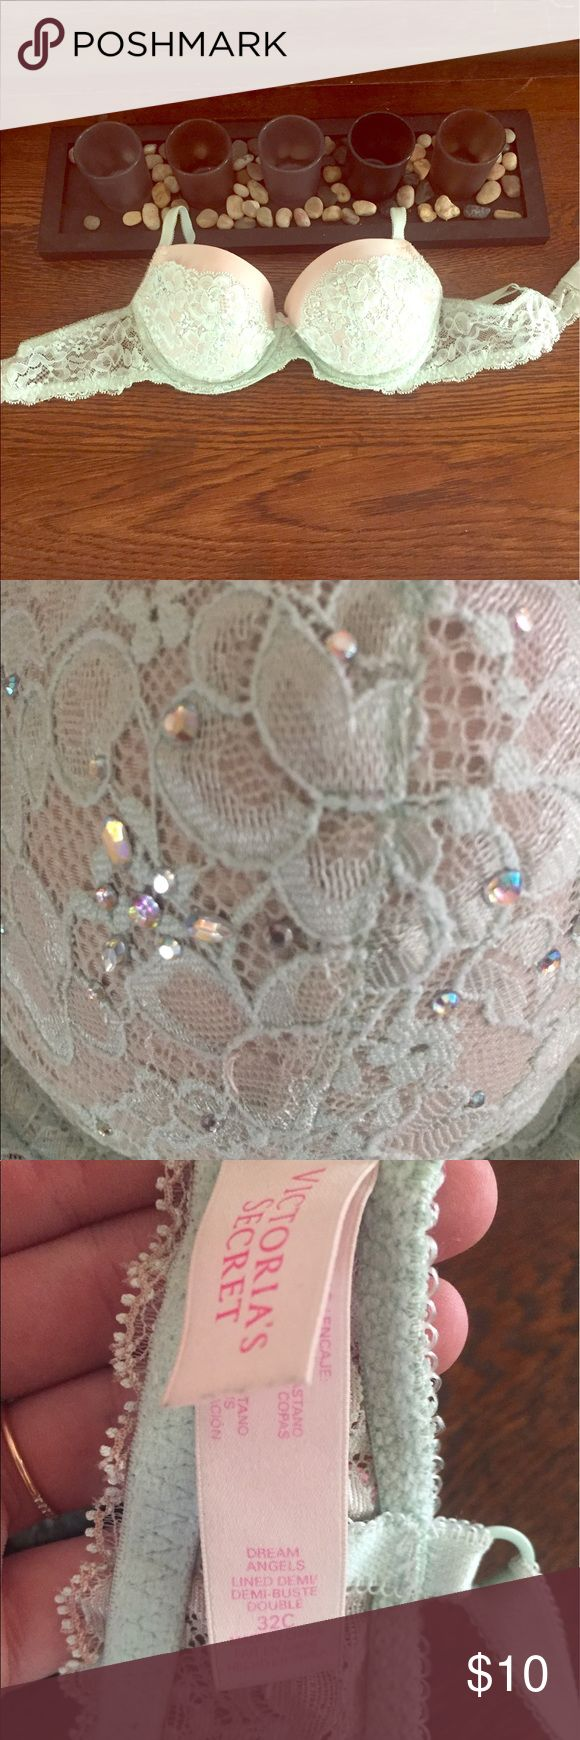 💎Victoria's Secret Dream Angel Bra Victoria's Secret Dream Angel lined Demi-bust bra size 32 C. This bra has super cute lace detailing & sparkles! Channel your inner mermaid in this pale aqua and and crème beauty! Victoria's Secret Intimates & Sleepwear Bras